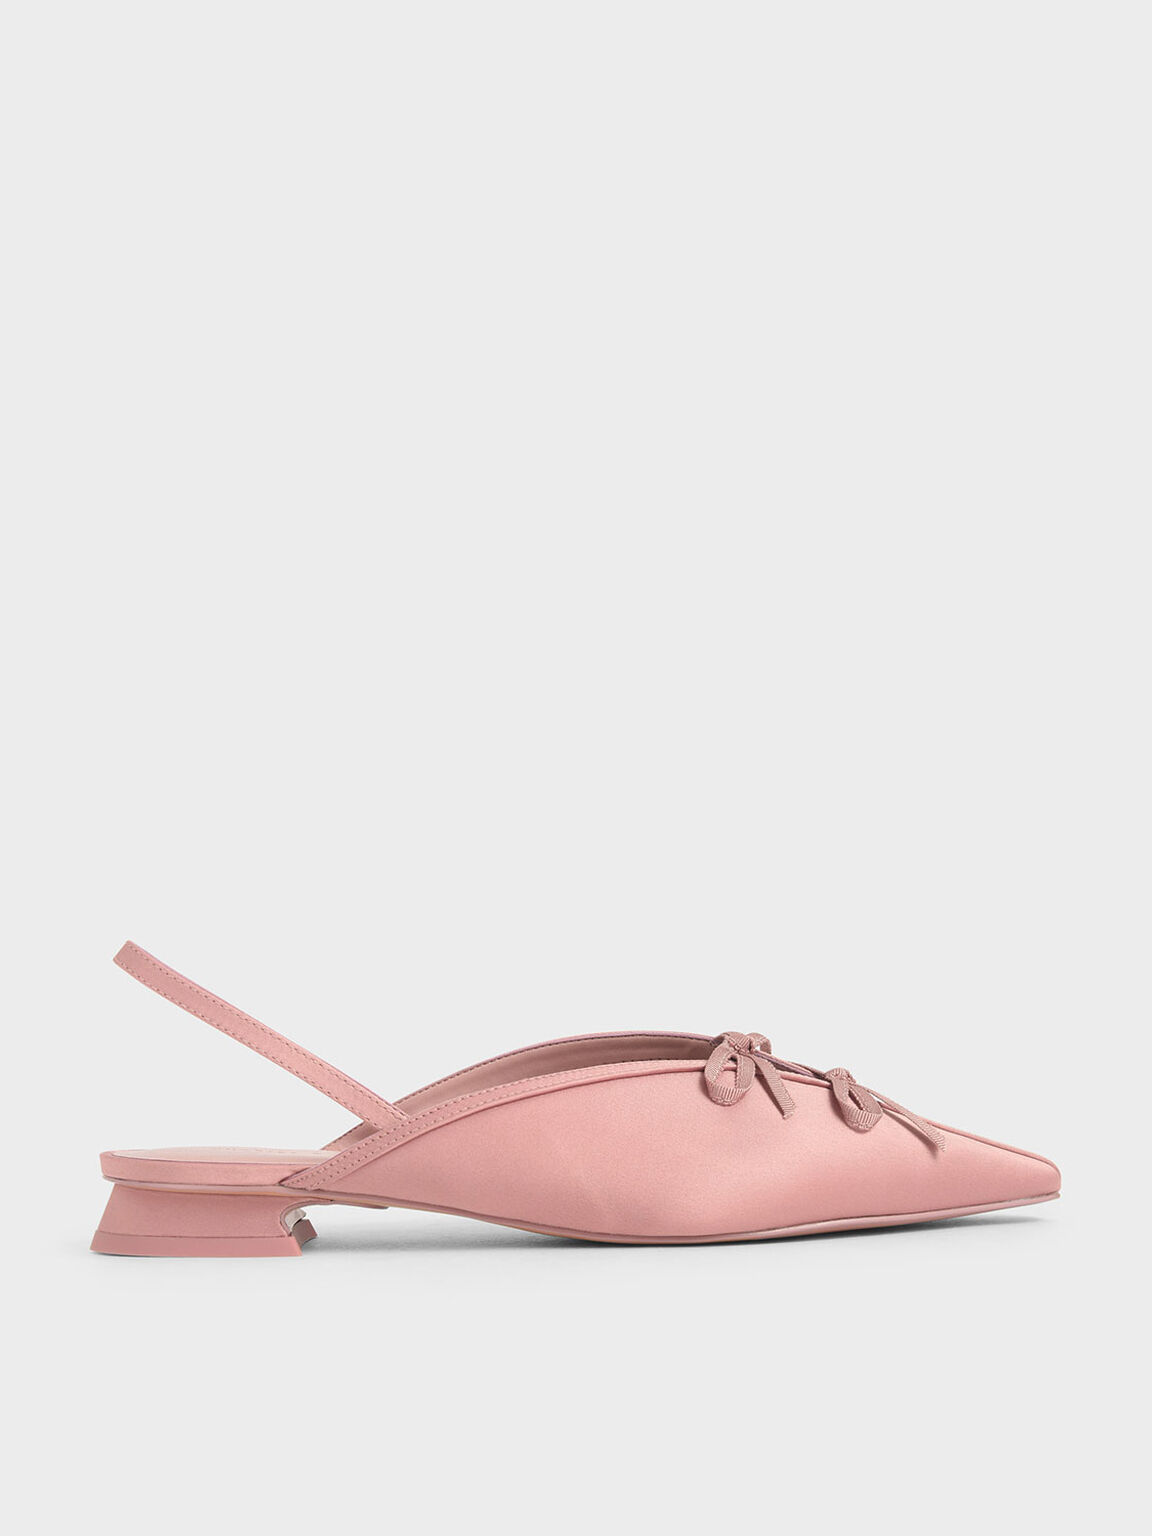 Satin Double Bow Slingback Flats, Pink, hi-res